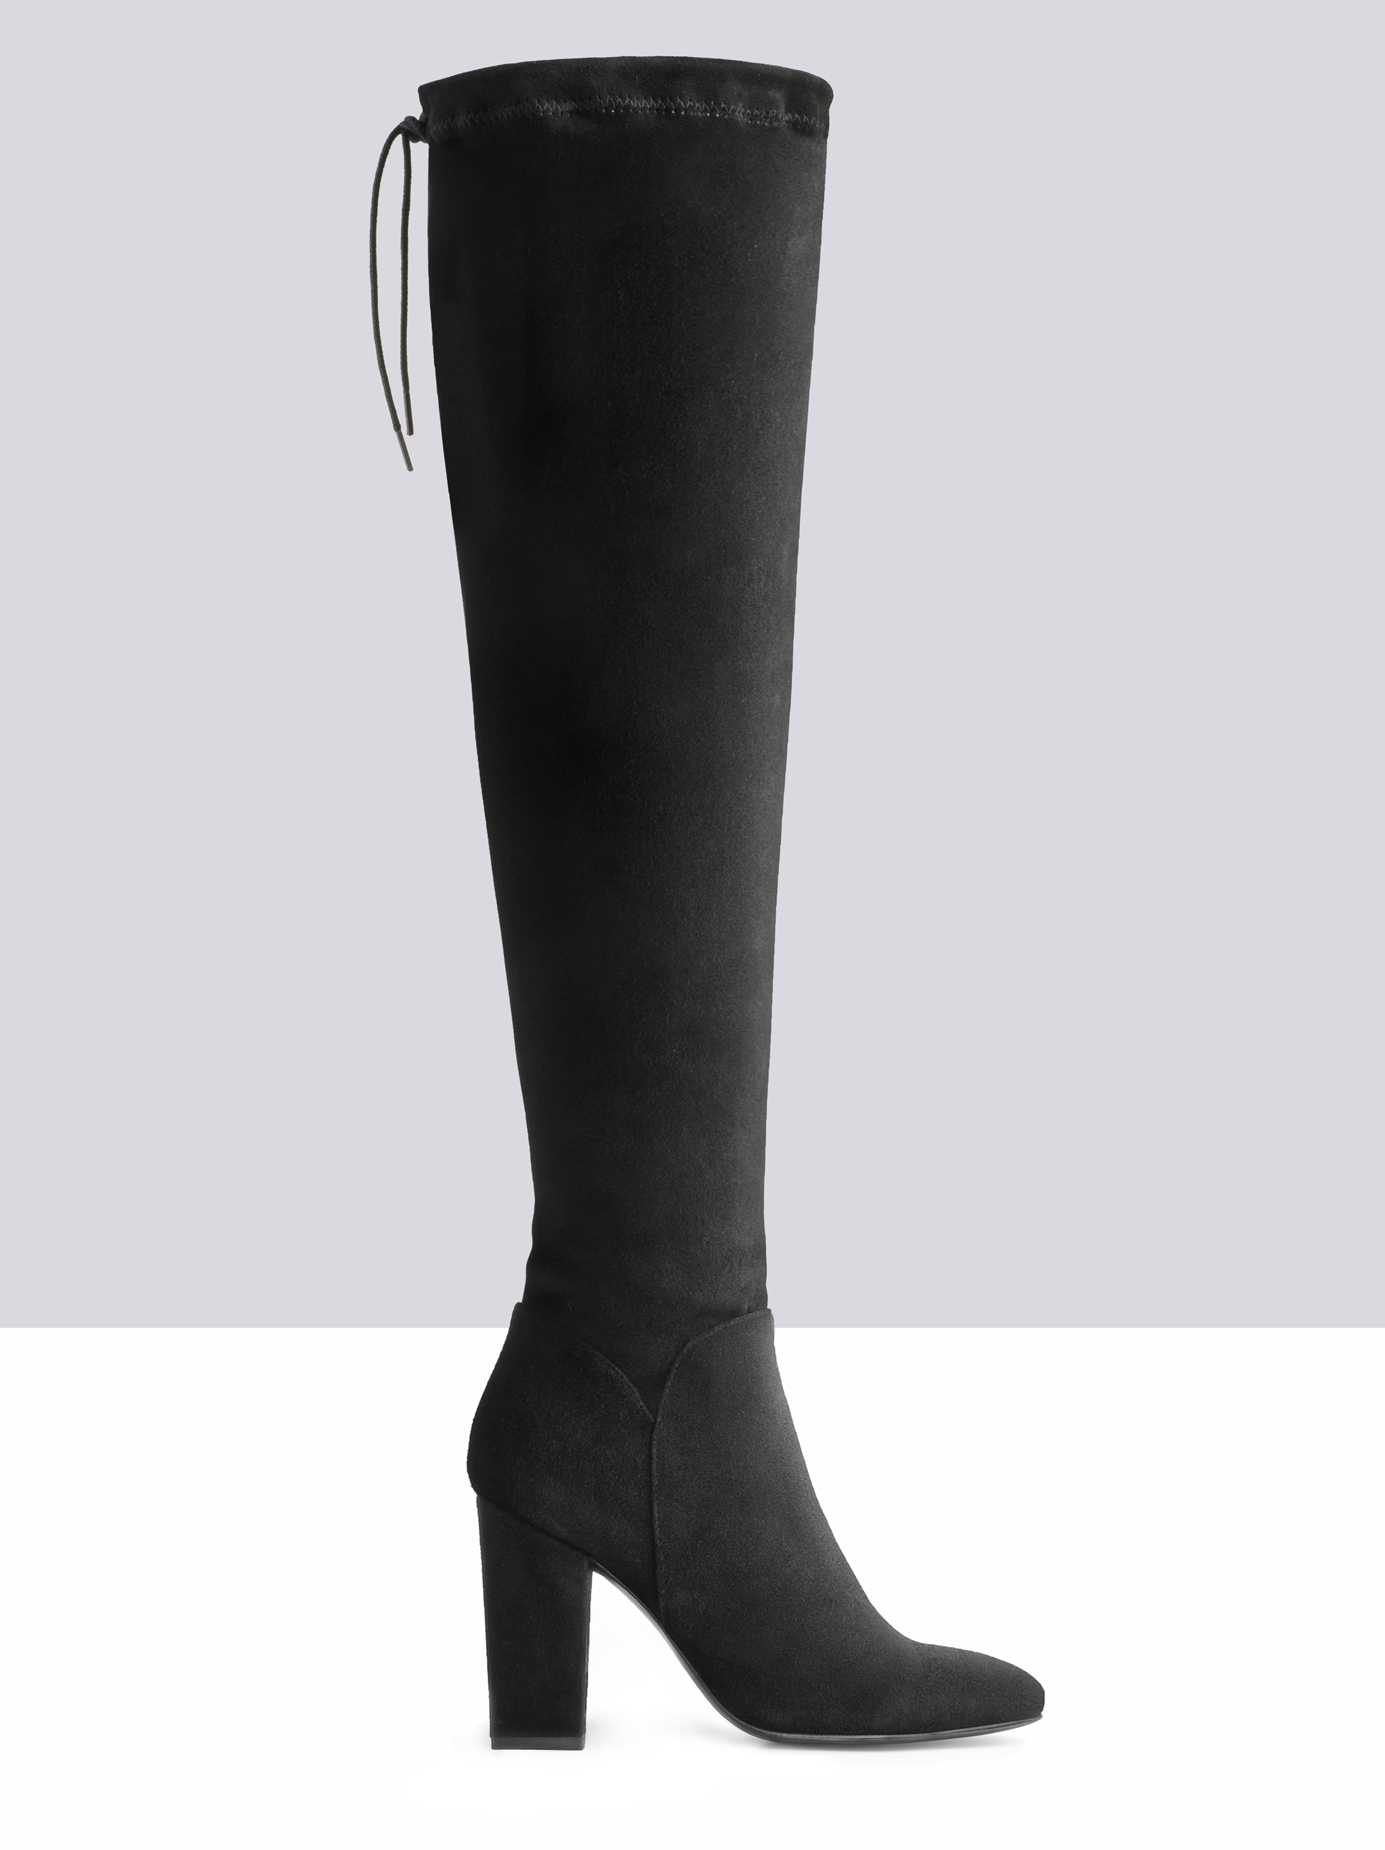 Over The Knee Boots Sale KyO7tHLW